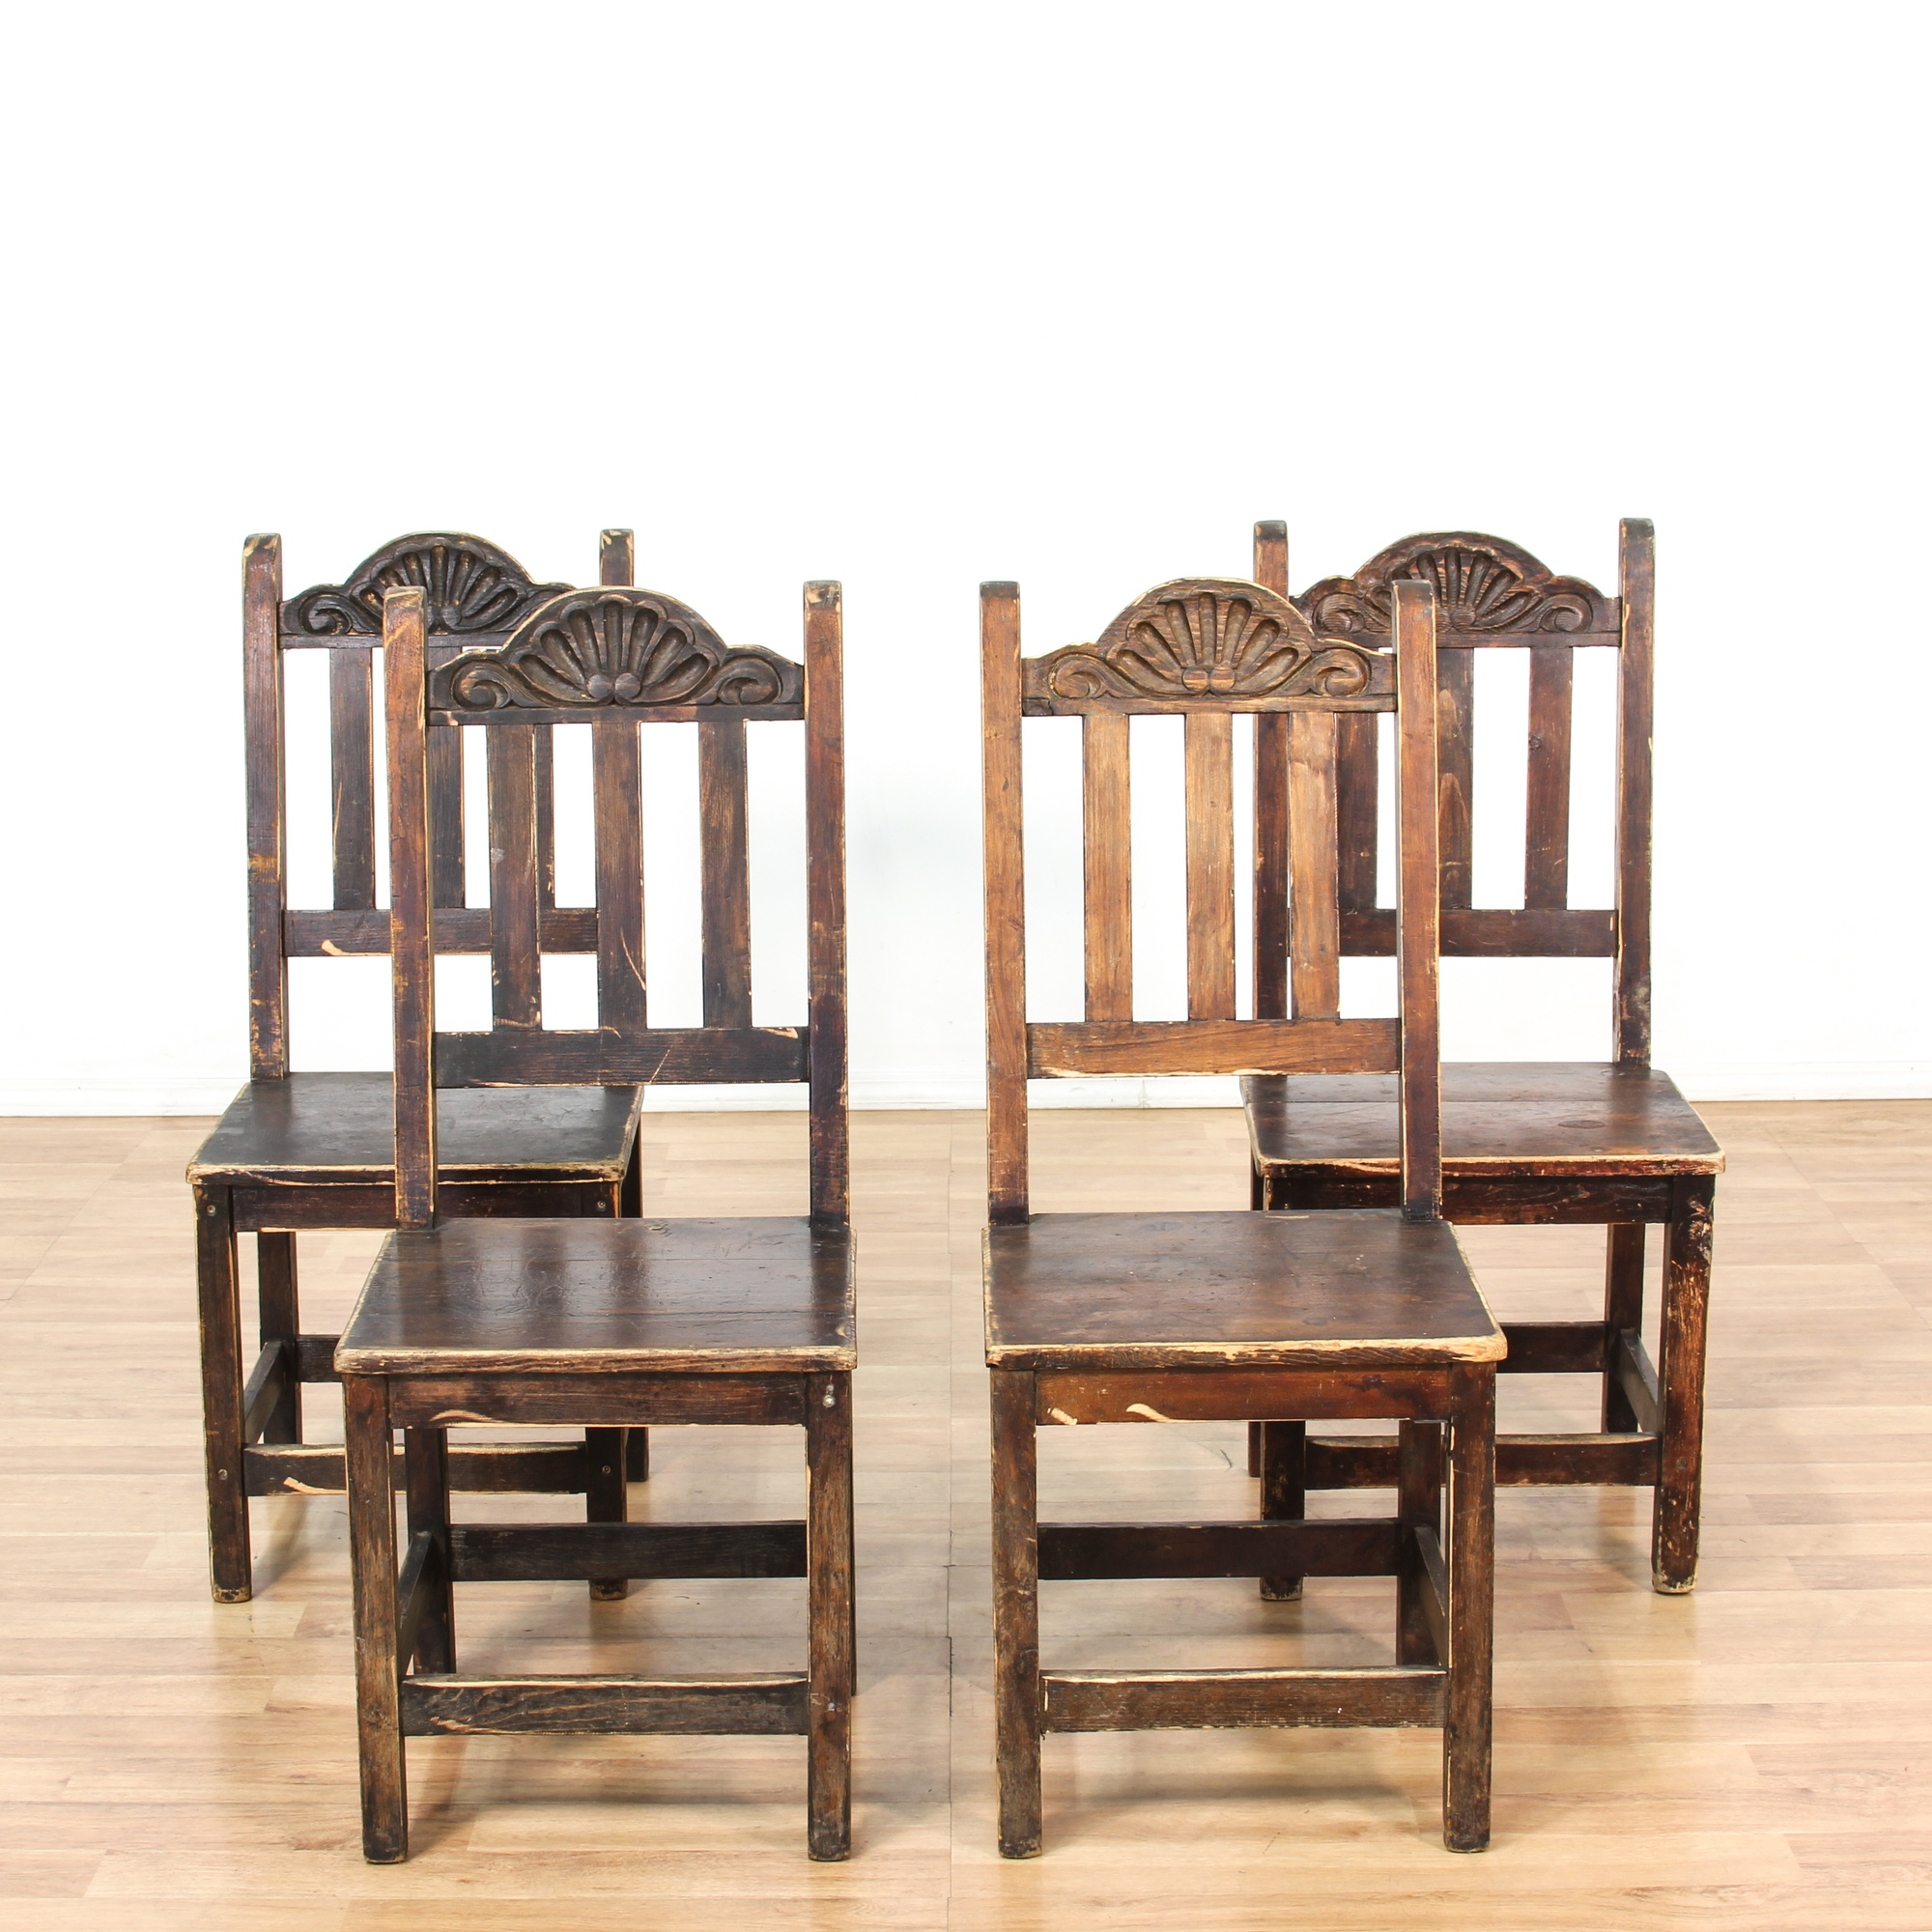 Spanish Style Dining Room Furniture: Set Of 4 Distressed Spanish Style Dining Chairs